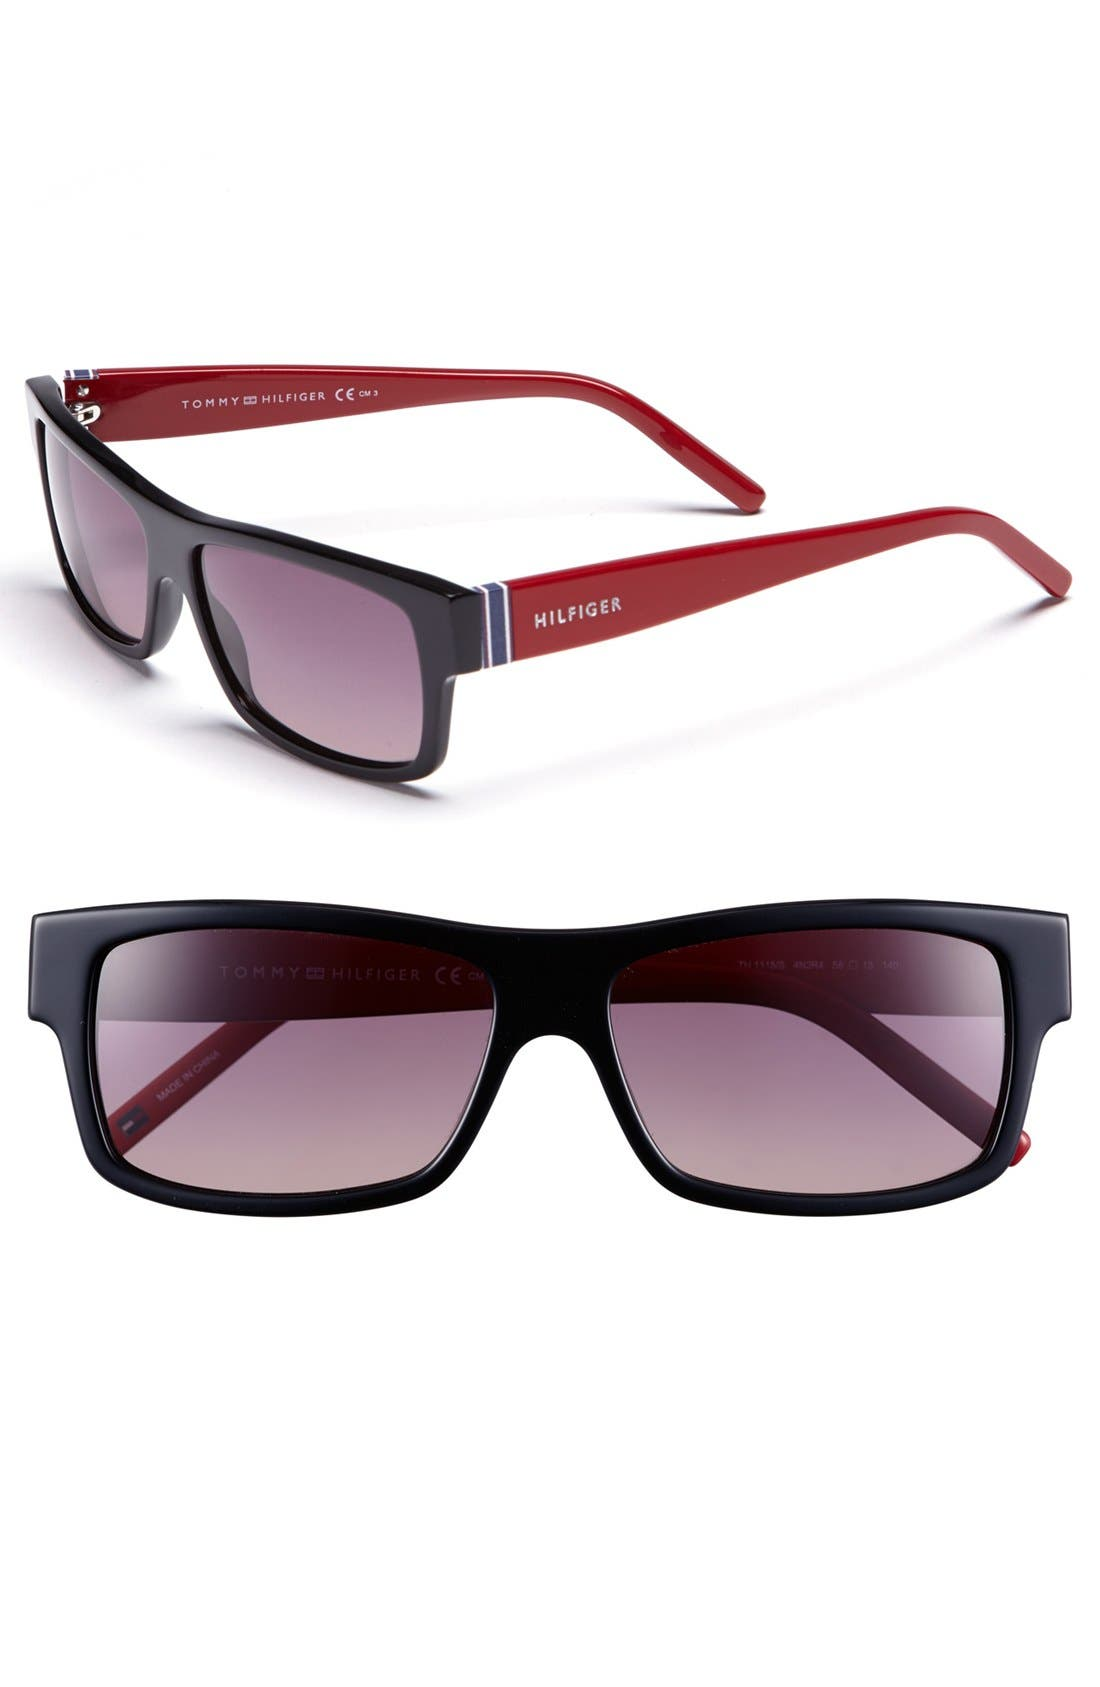 Main Image - Tommy Hilfiger 56mm Retro Sunglasses